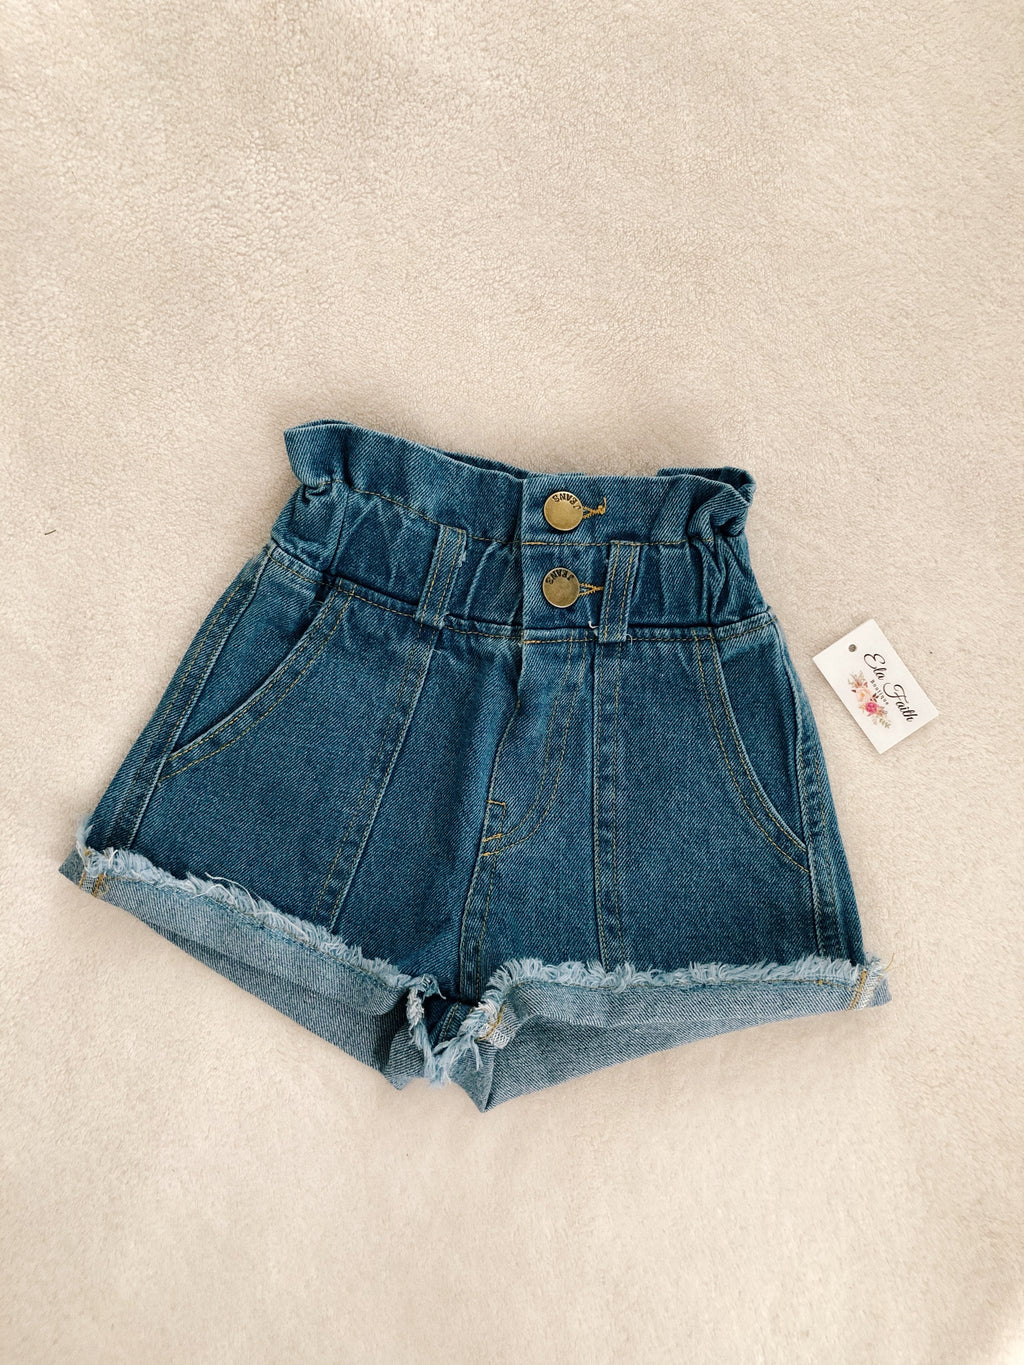 Tobi high waisted denim shorts